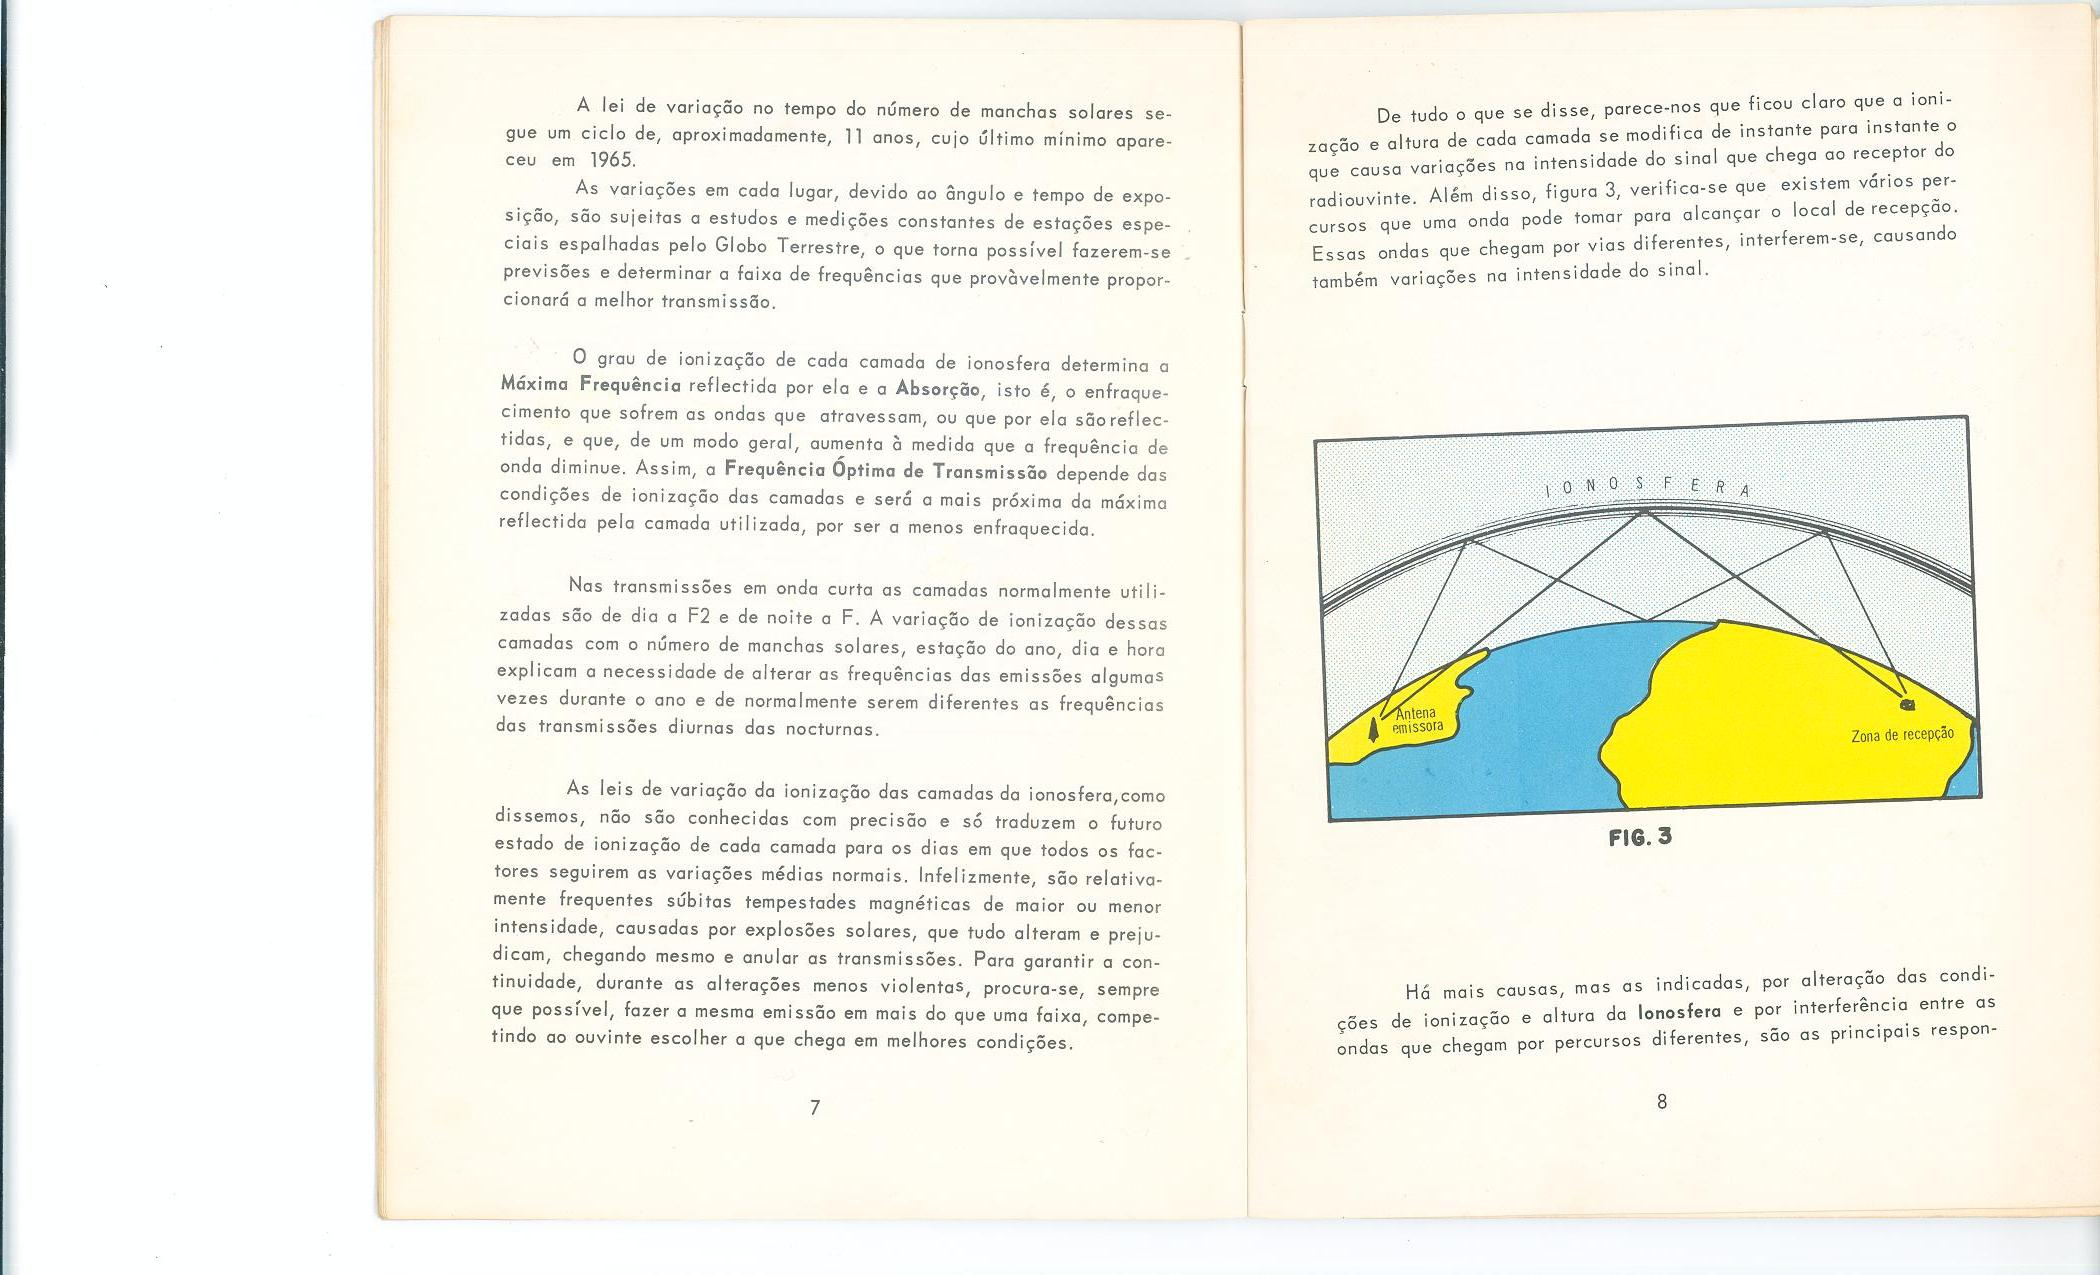 Manual do rádiouvinte das ondas curtas, pg 7, 8